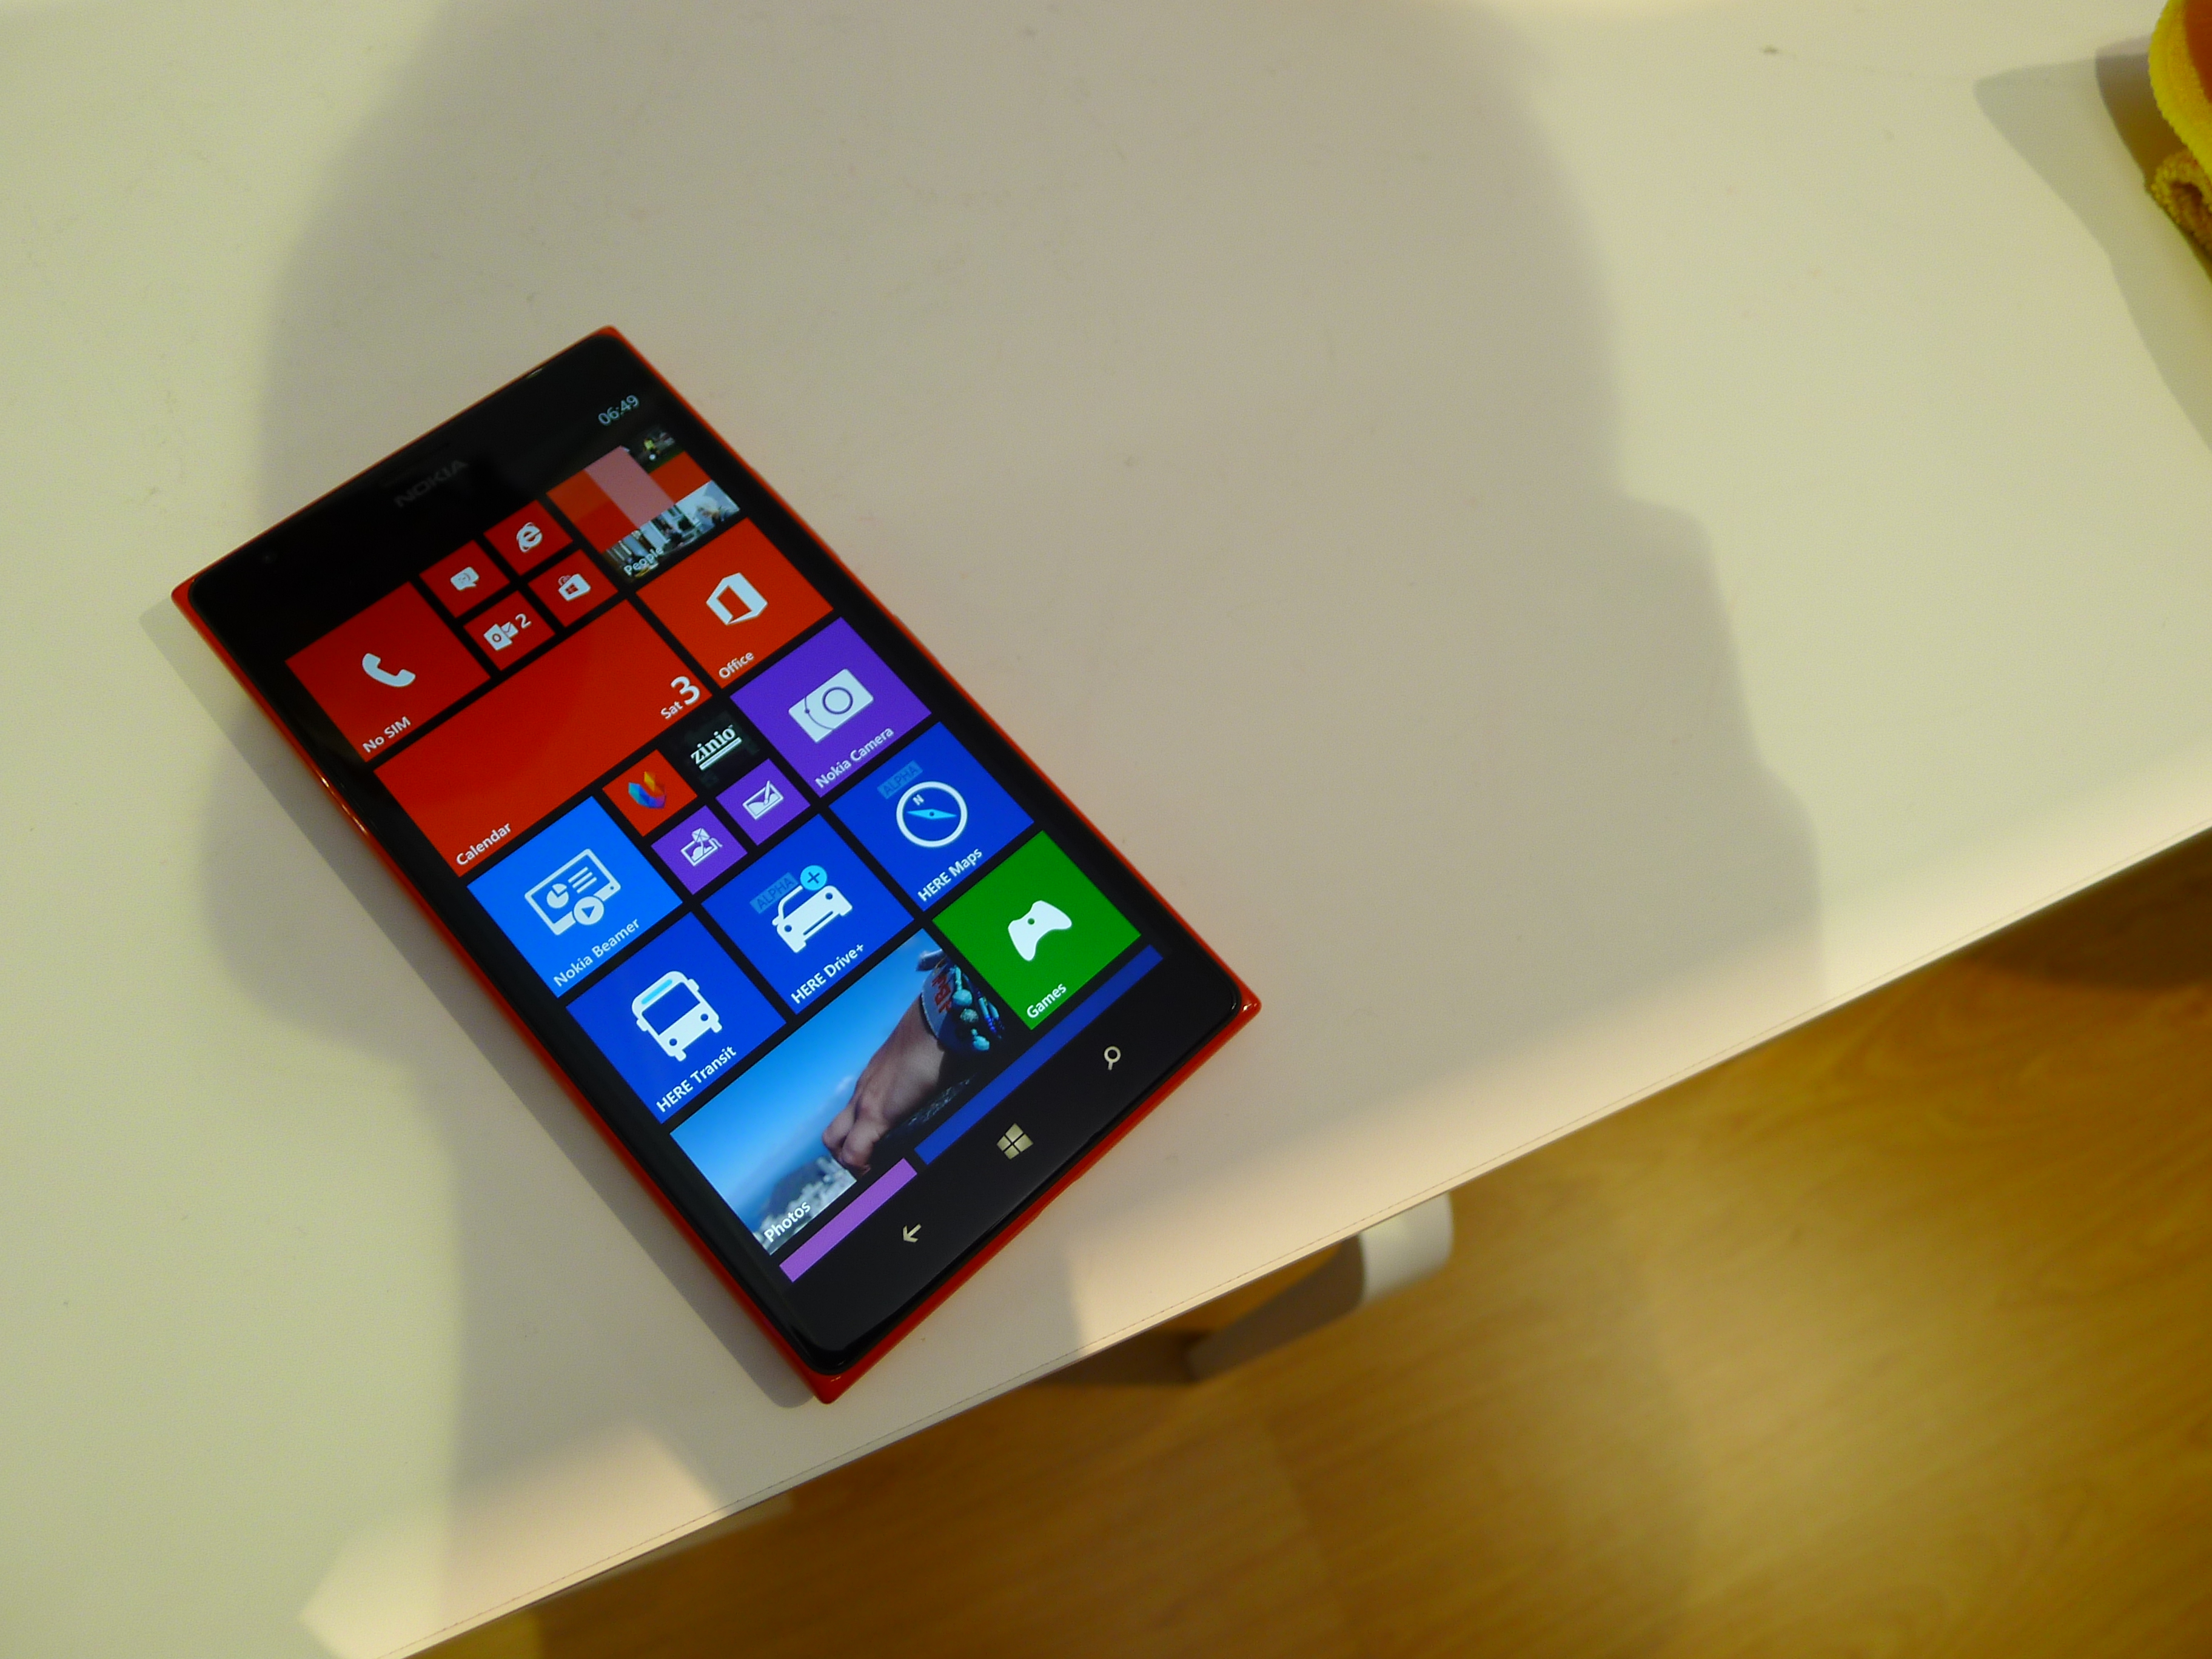 P1040515 Nokia Lumia 1520 hands on: This colossal 6, 1080p quad core smartphone is sizing up the Galaxy Note 3